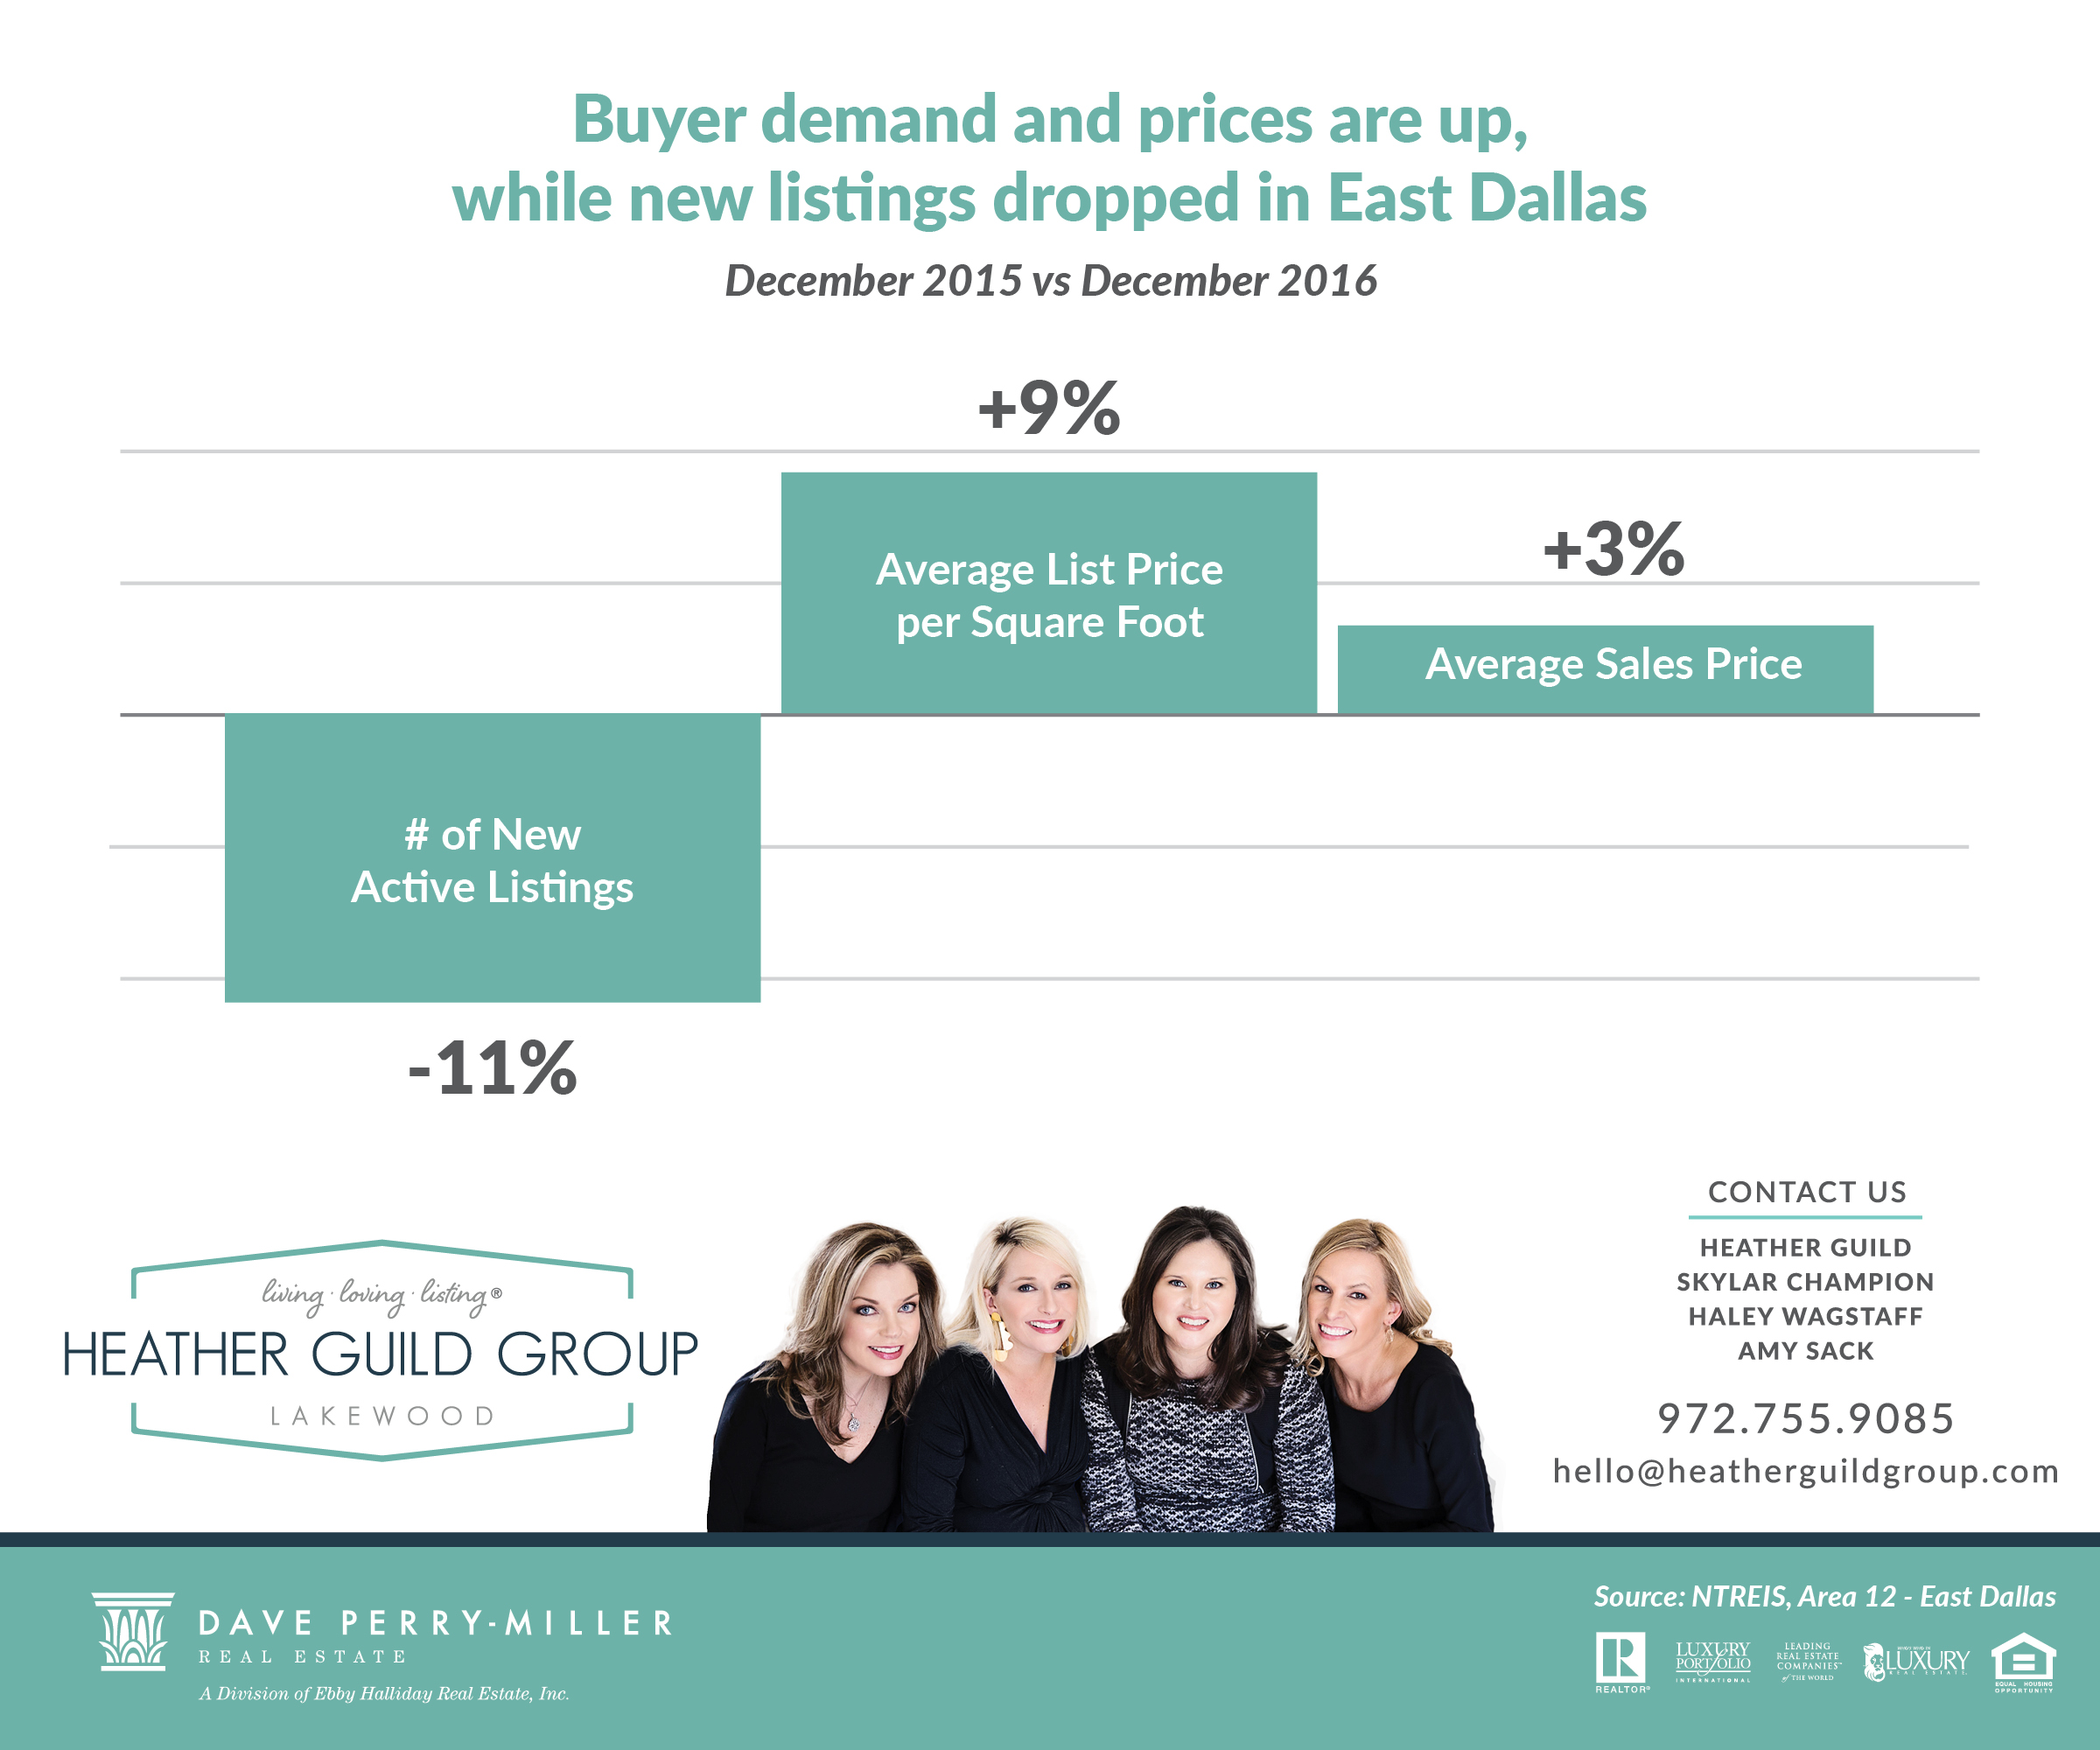 East Dallas Top Real Estate Experts the Heather Guild Group at Dave Perry Miller Real Estate can help you find your perfect new home